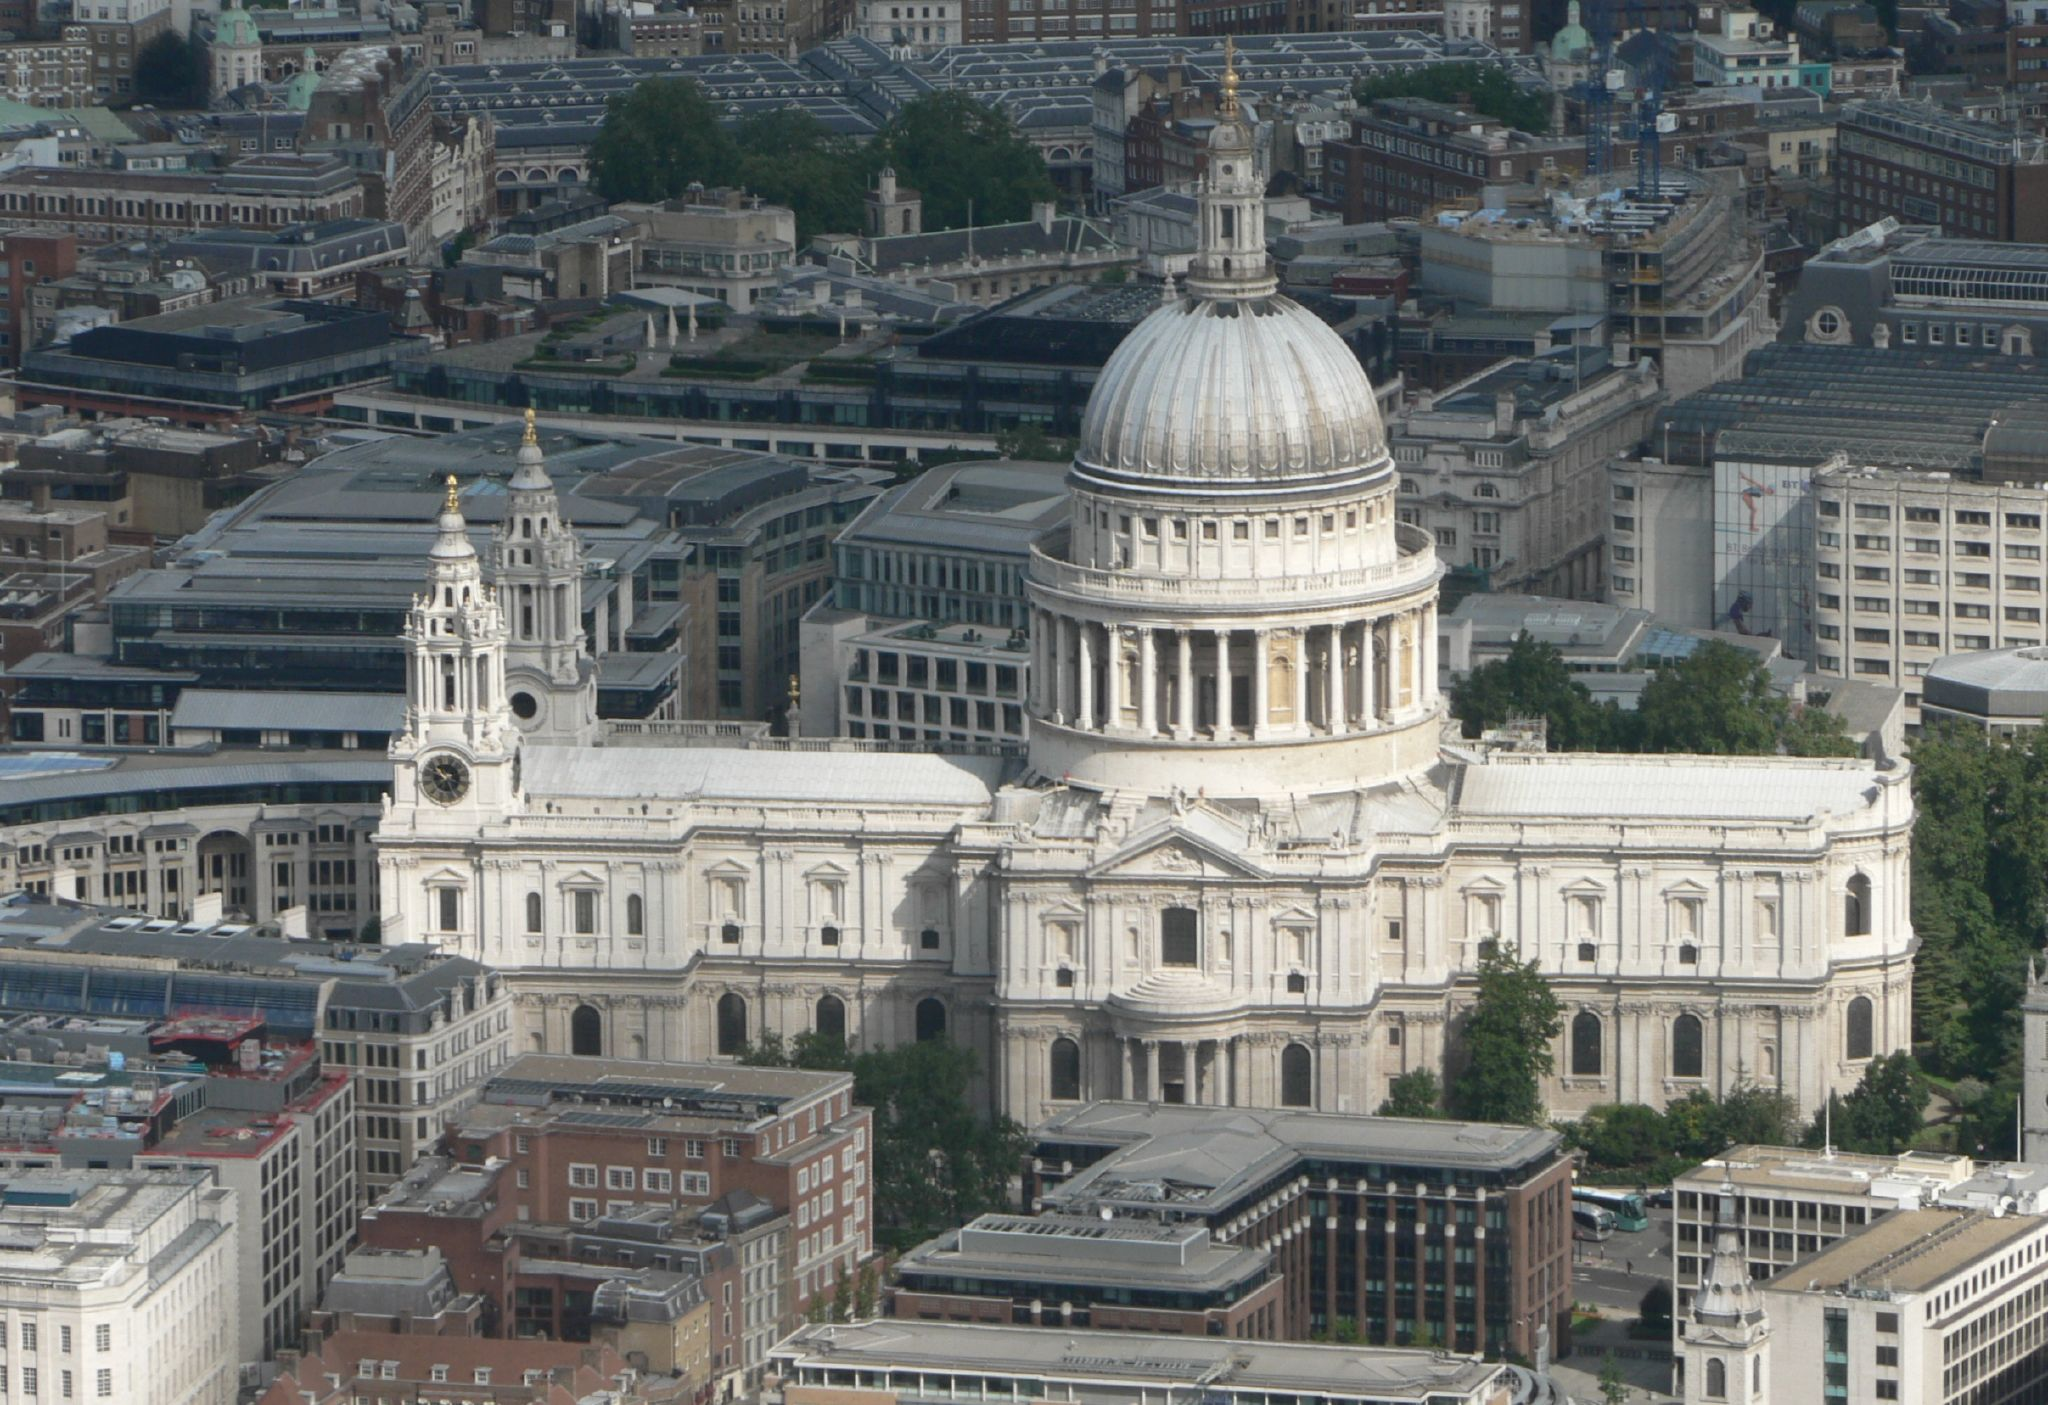 St pauls cathedral photo